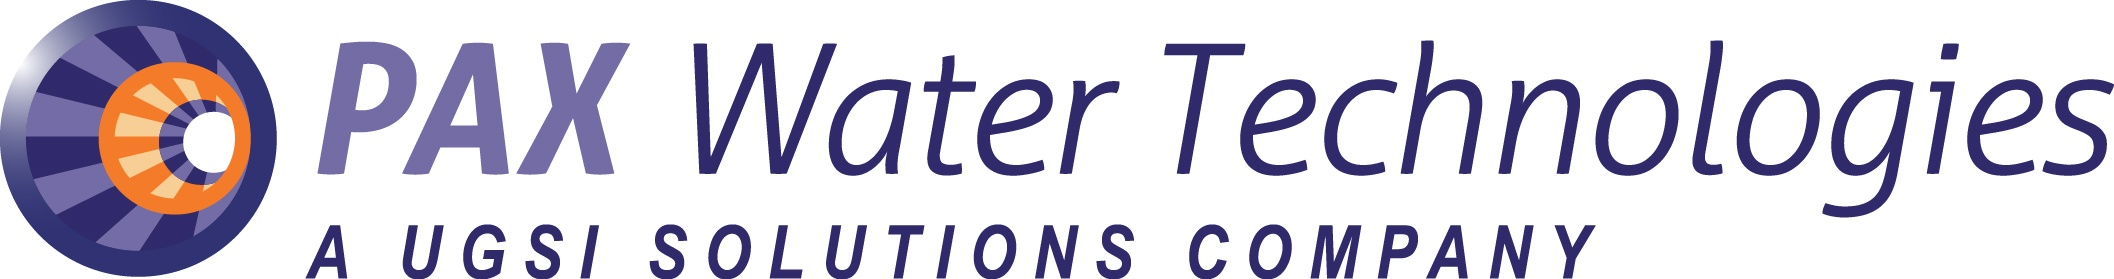 PAX Water Technologies Logo